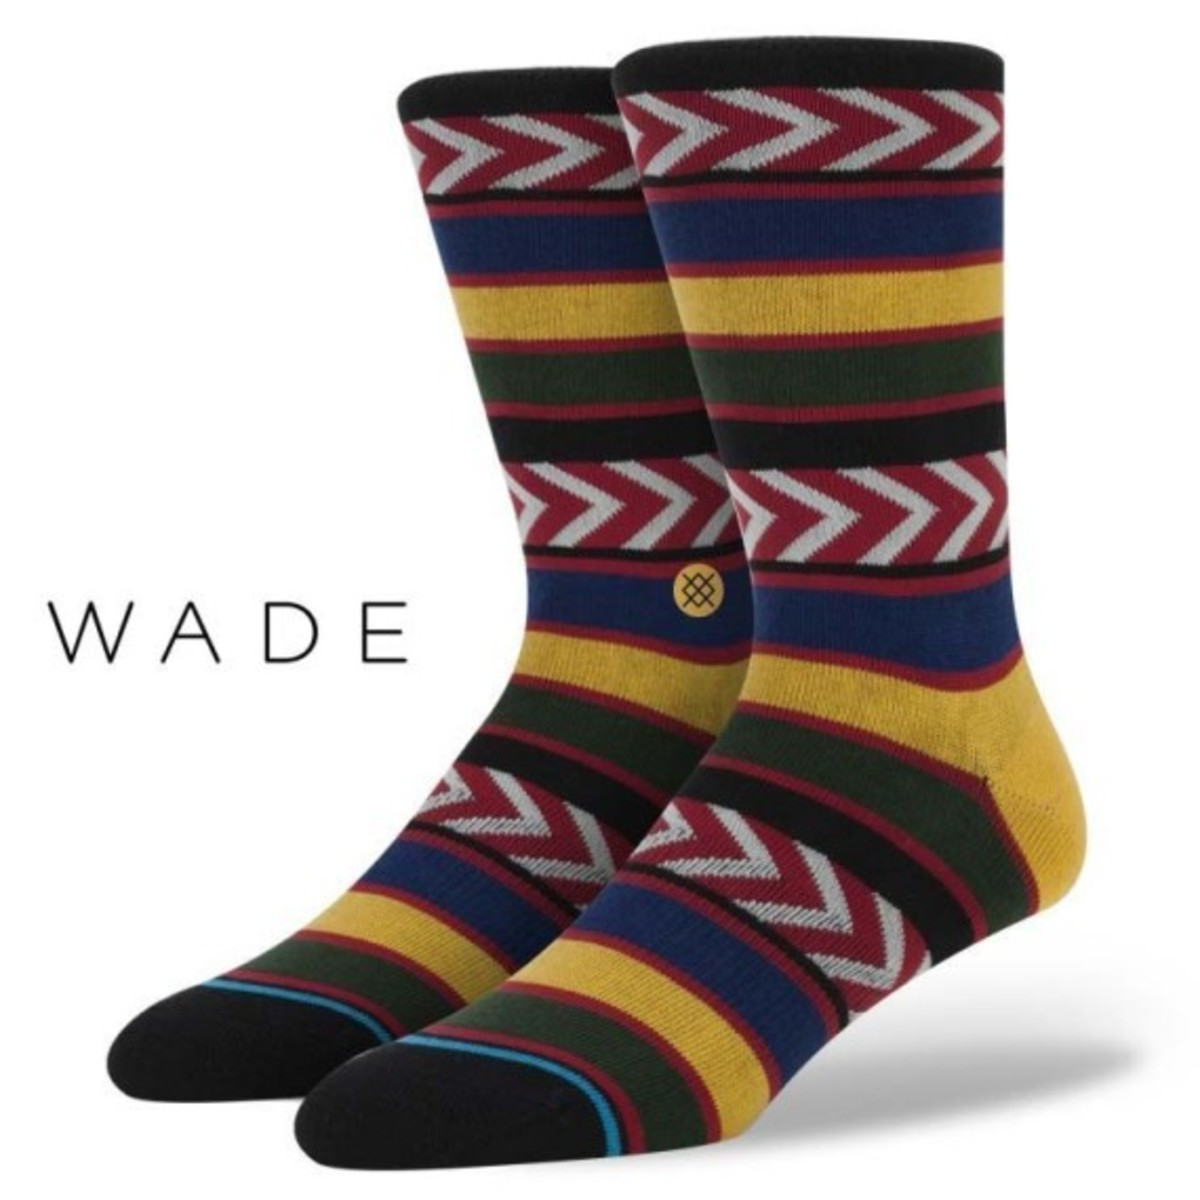 dwyane-wade-socks-collection-10